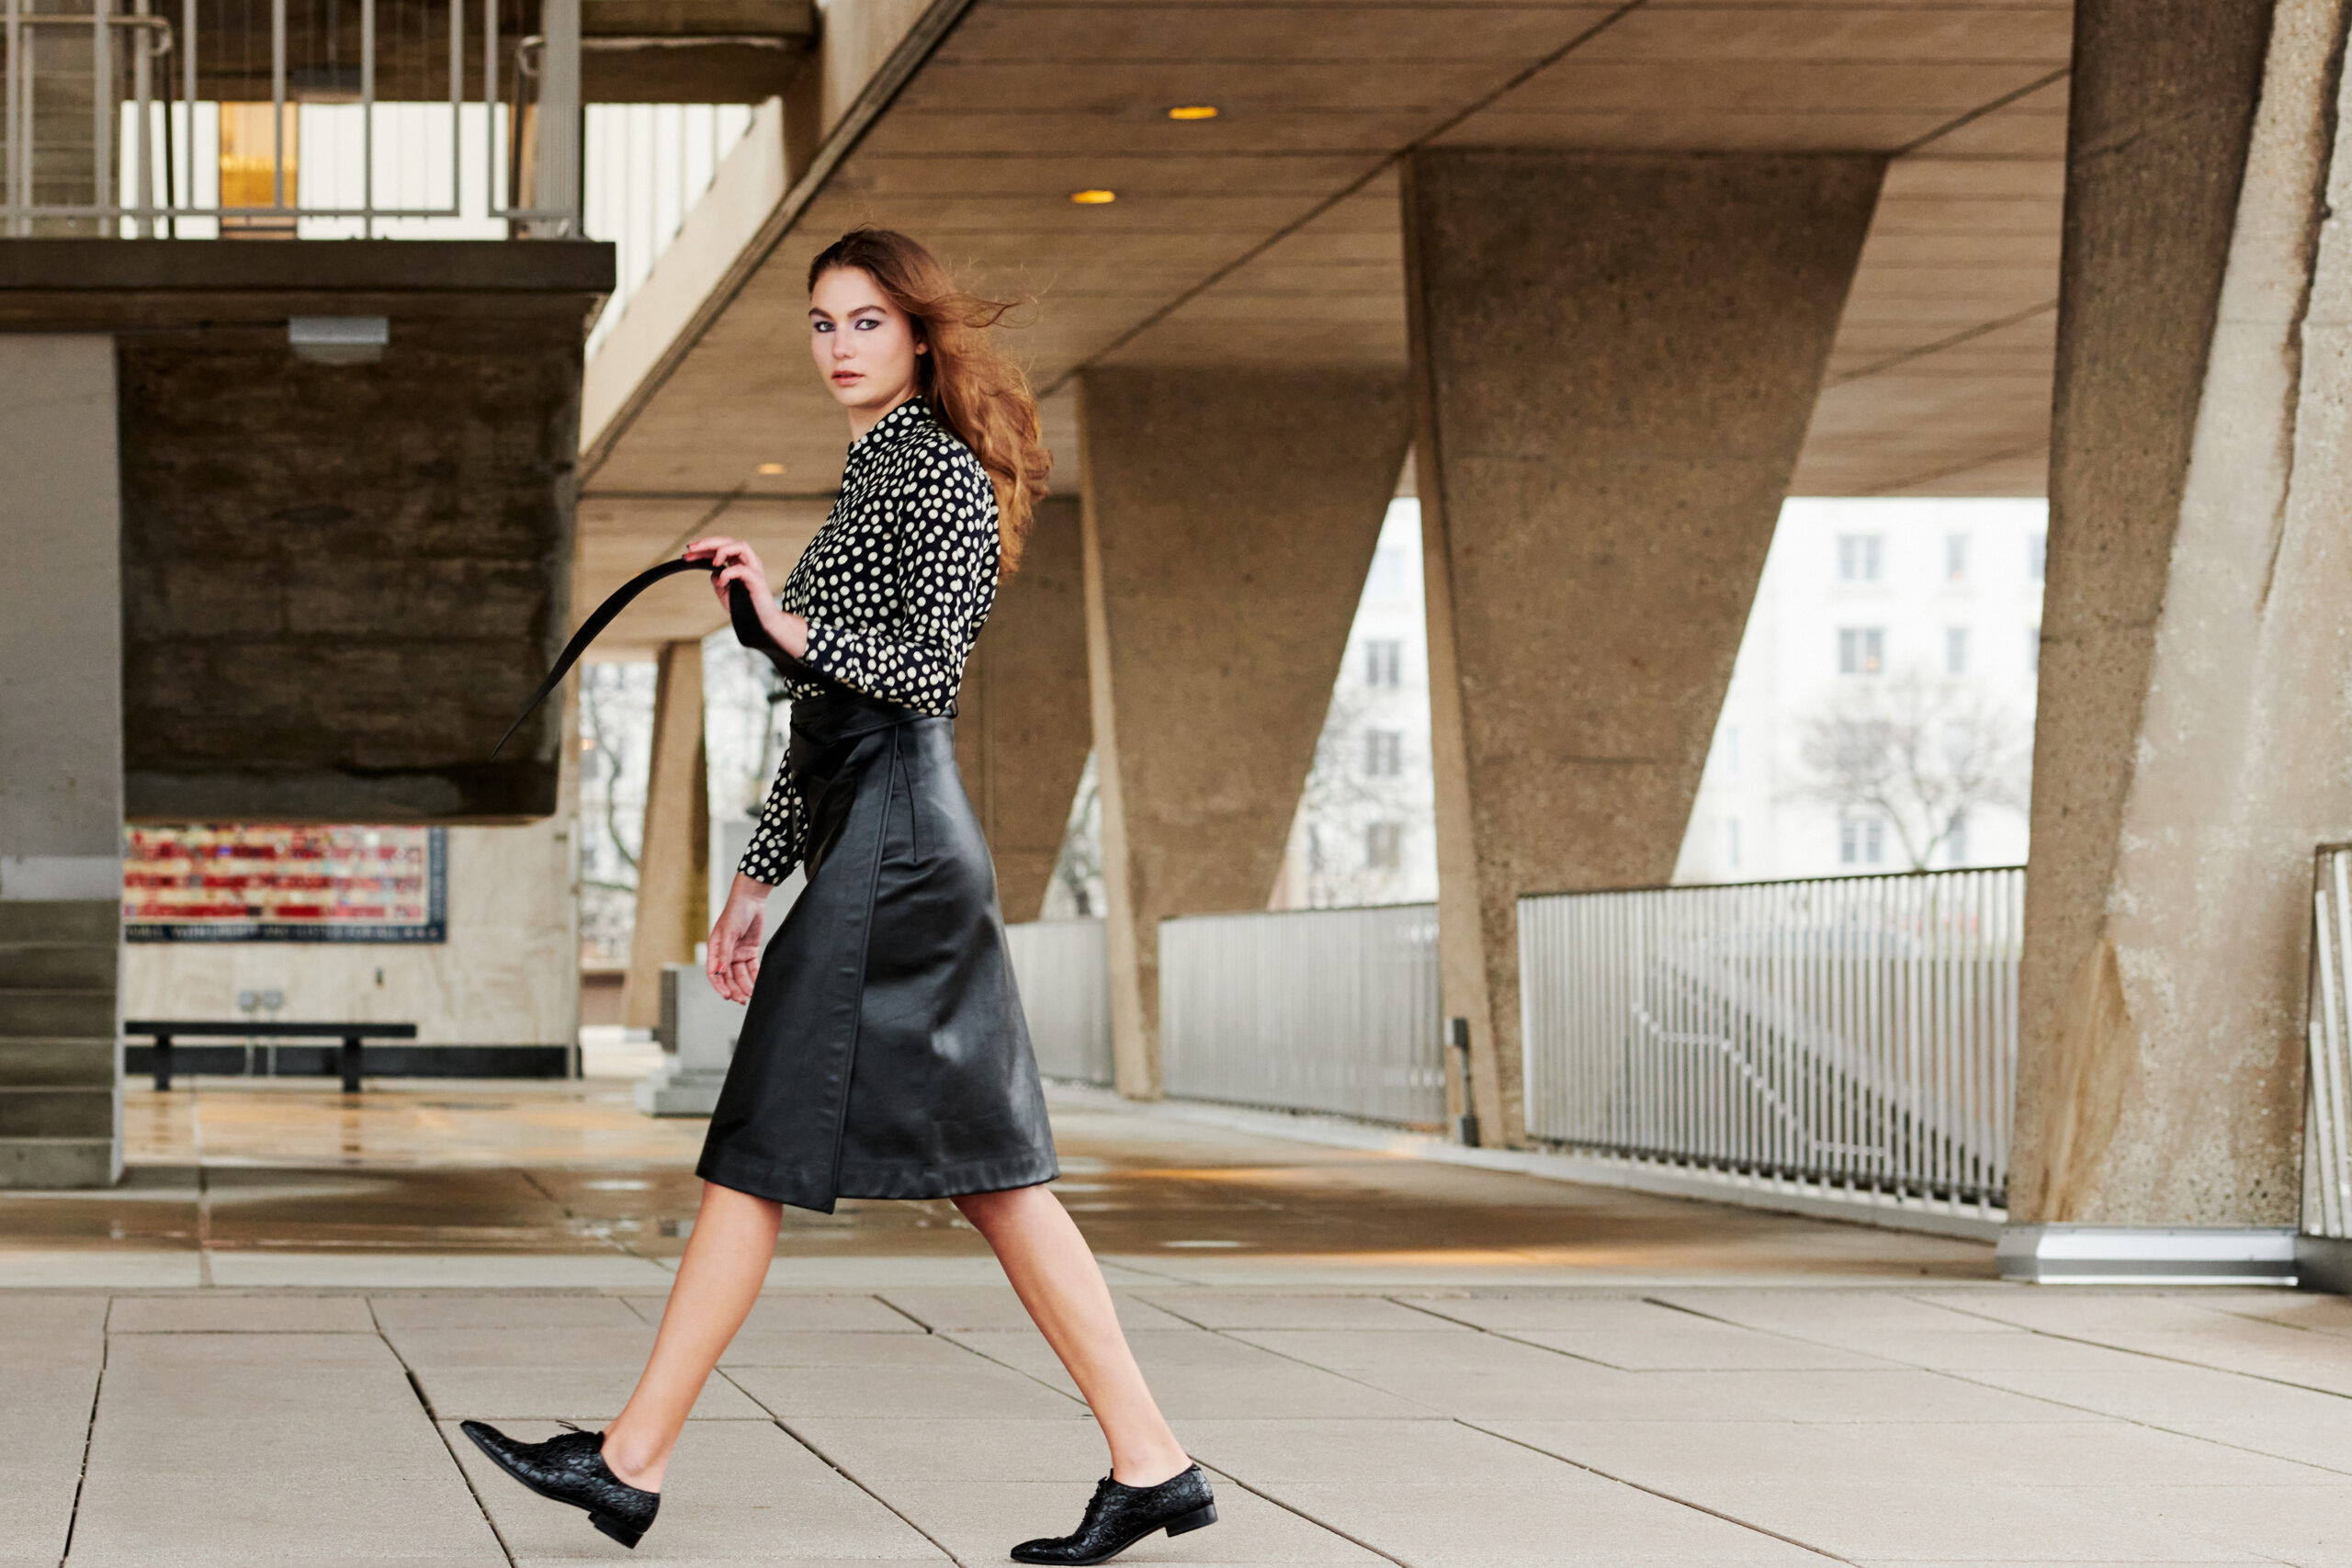 Kate wears SAINT LAURENT dotted silk blouse and BALENCIAGA leather belted skirt.